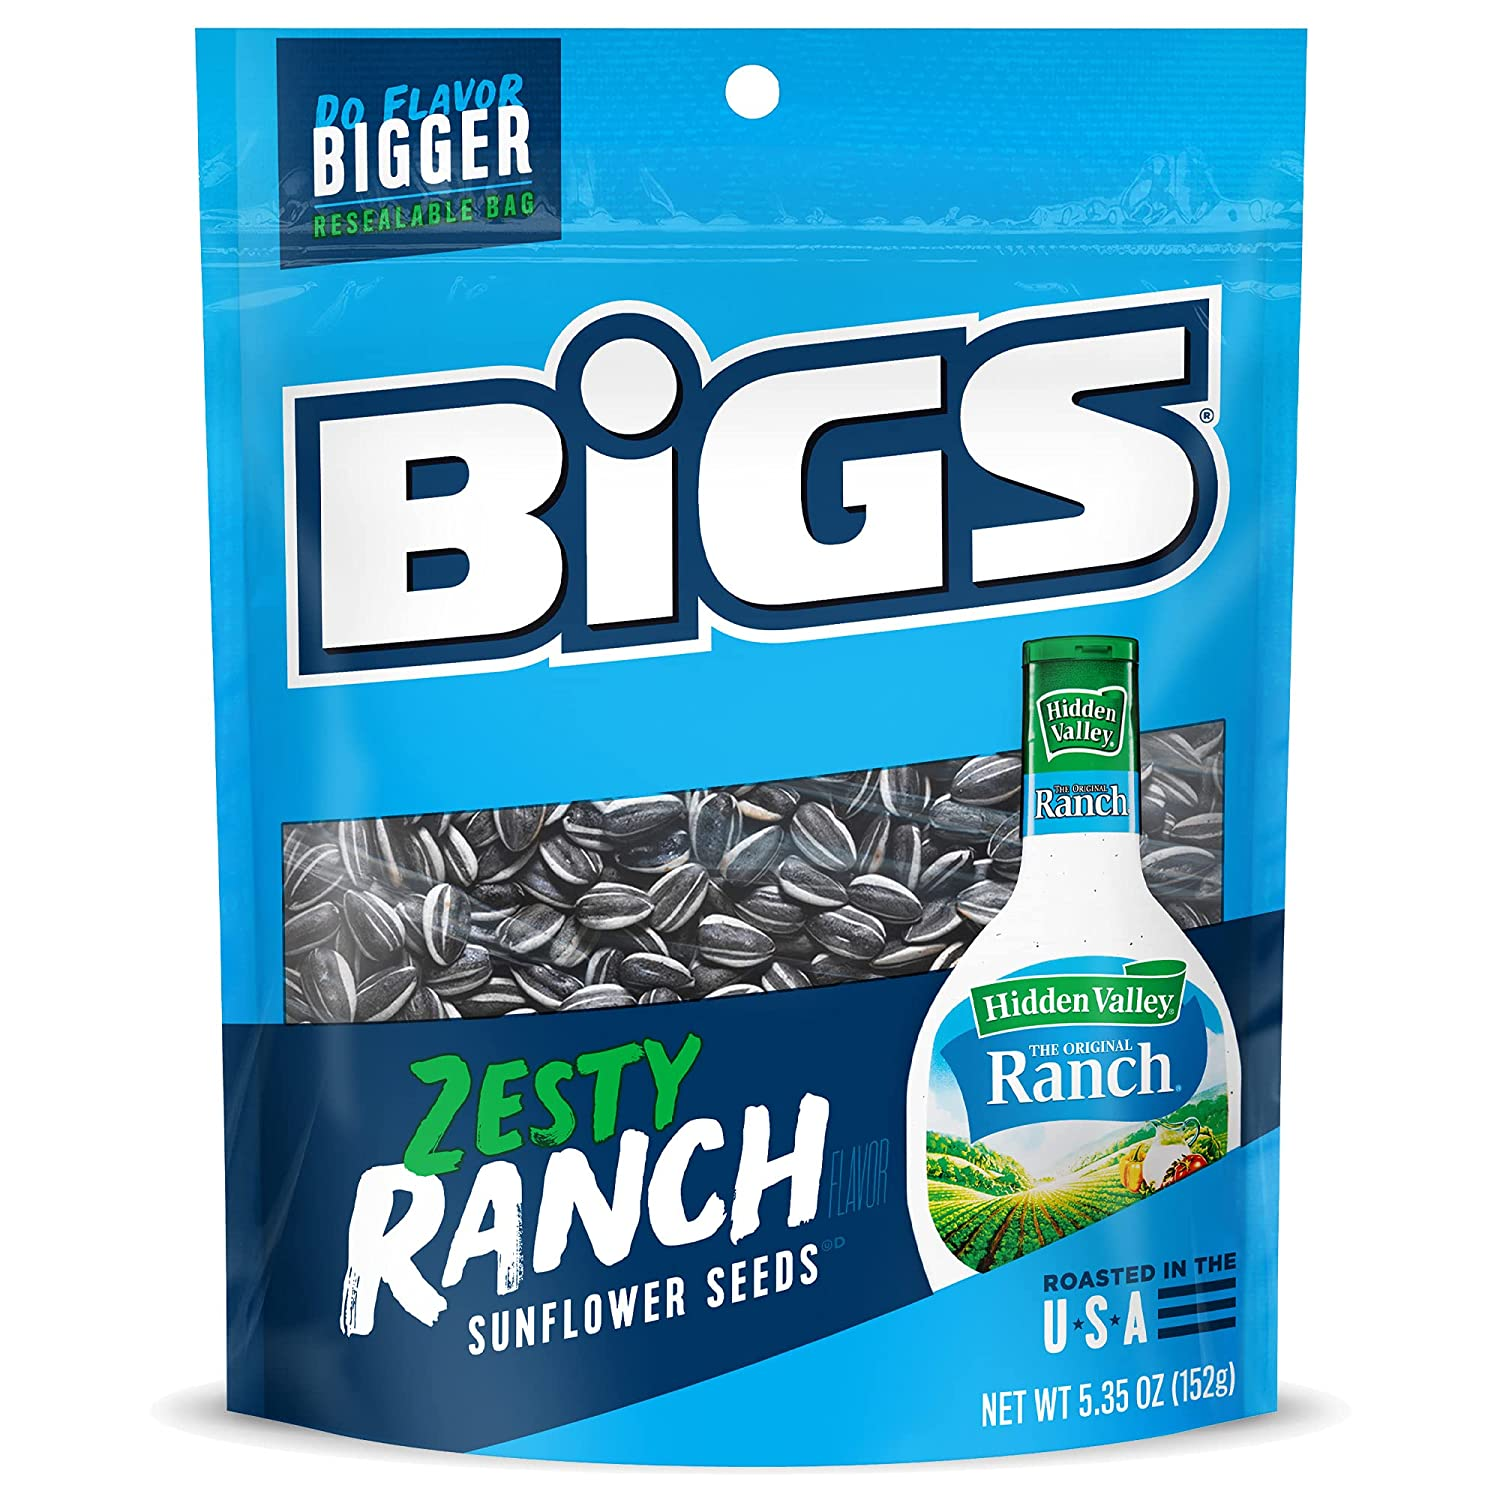 BIGS Hidden Valley Ranch low-pricing Sunflower Seeds Limited price L Snack Keto Friendly